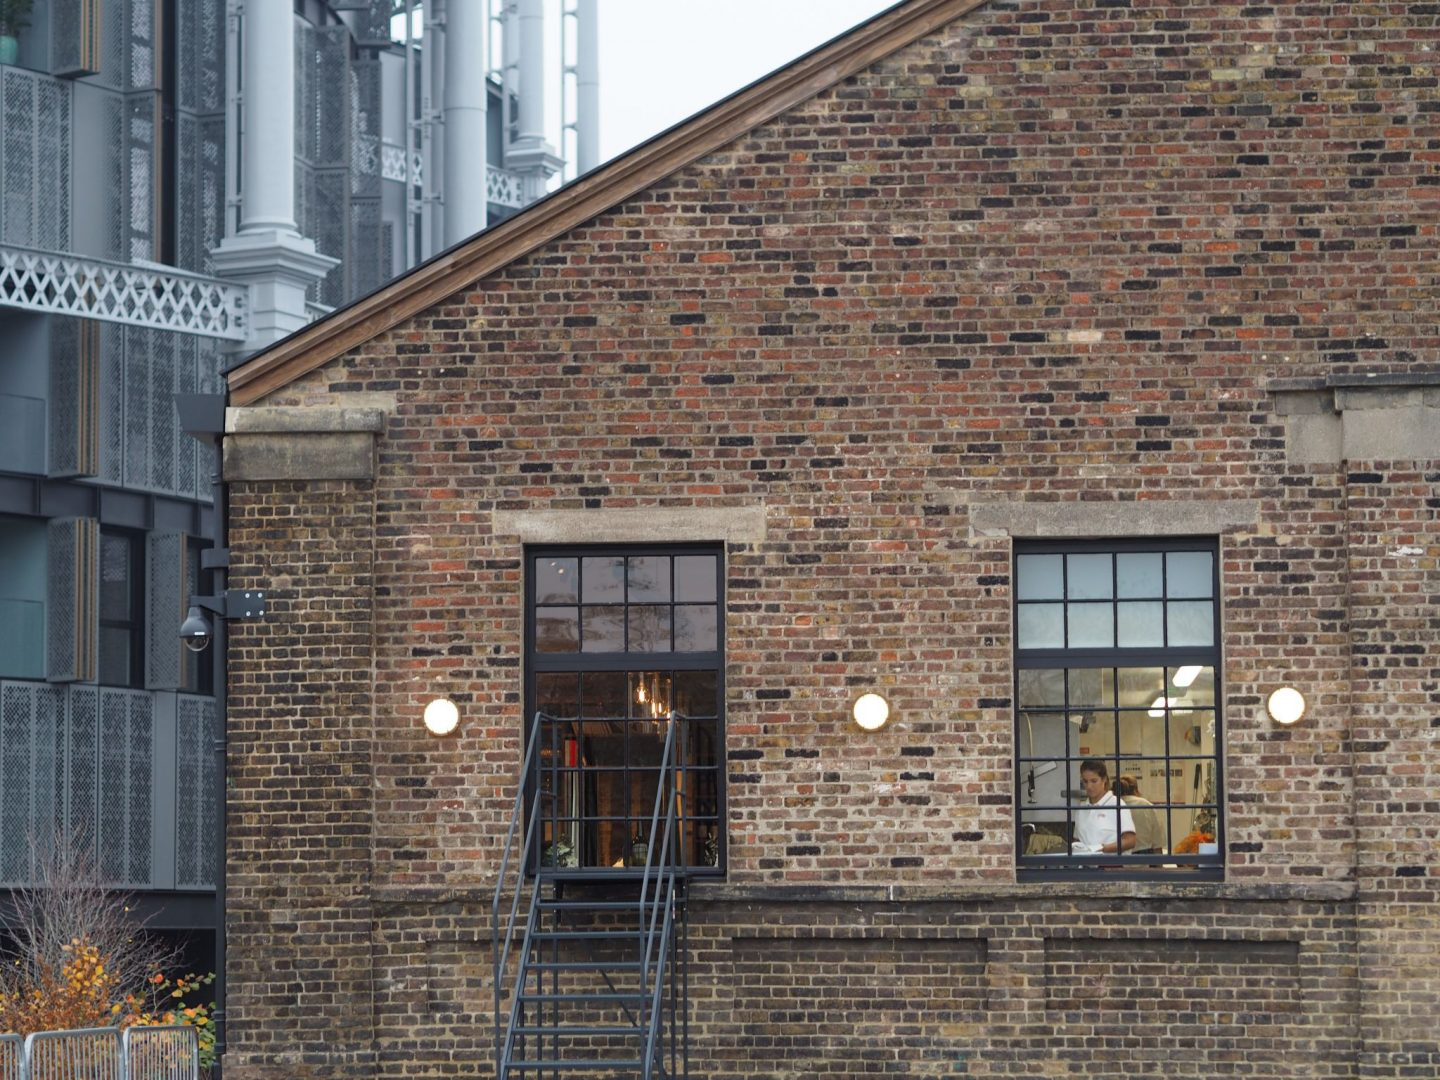 Coal Drops Yard, Barrafina, Gasworks view, Mary Middleton for Hello Peagreen